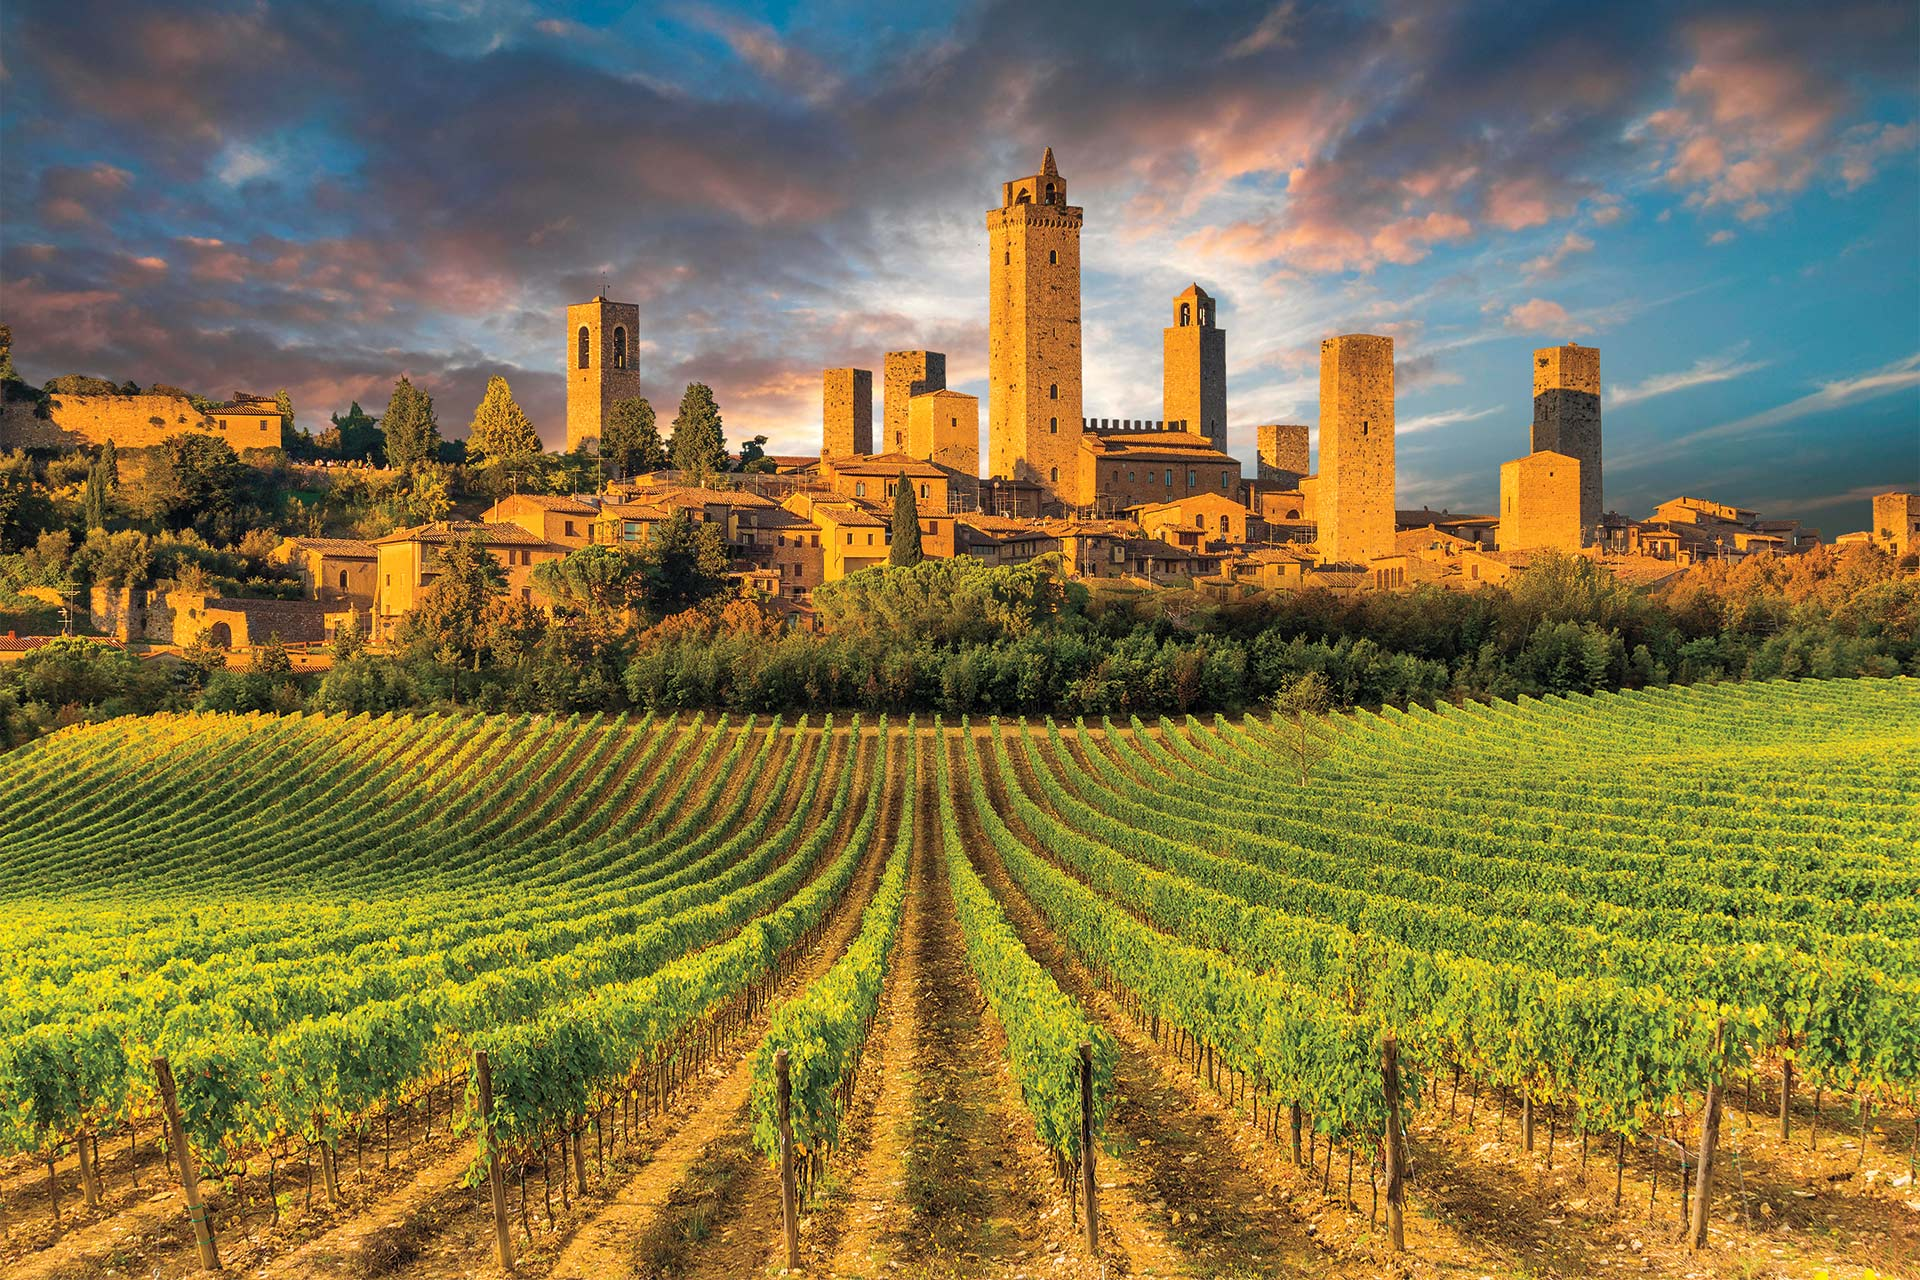 Vineyards on the outskirts of the city of San Gimignano